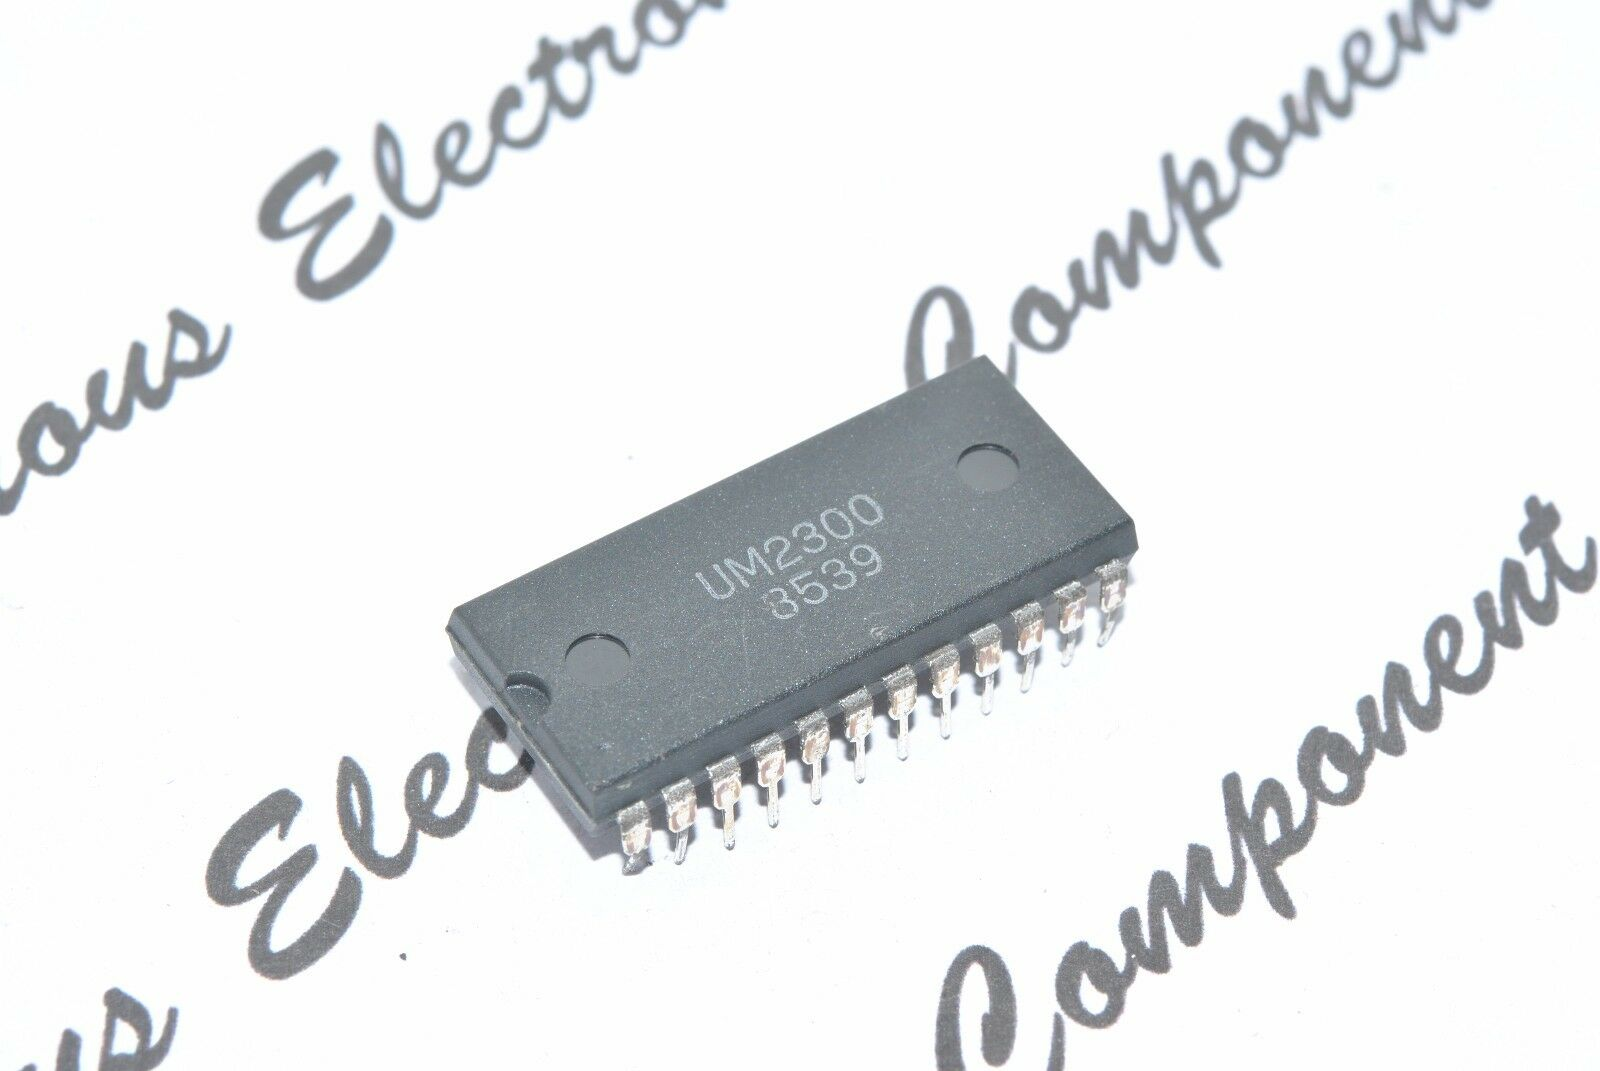 1pcs Um2300 Integrated Circuit Ic Genuine 590 Picclick Basic Information For Beginners In 1 Of 2only Available